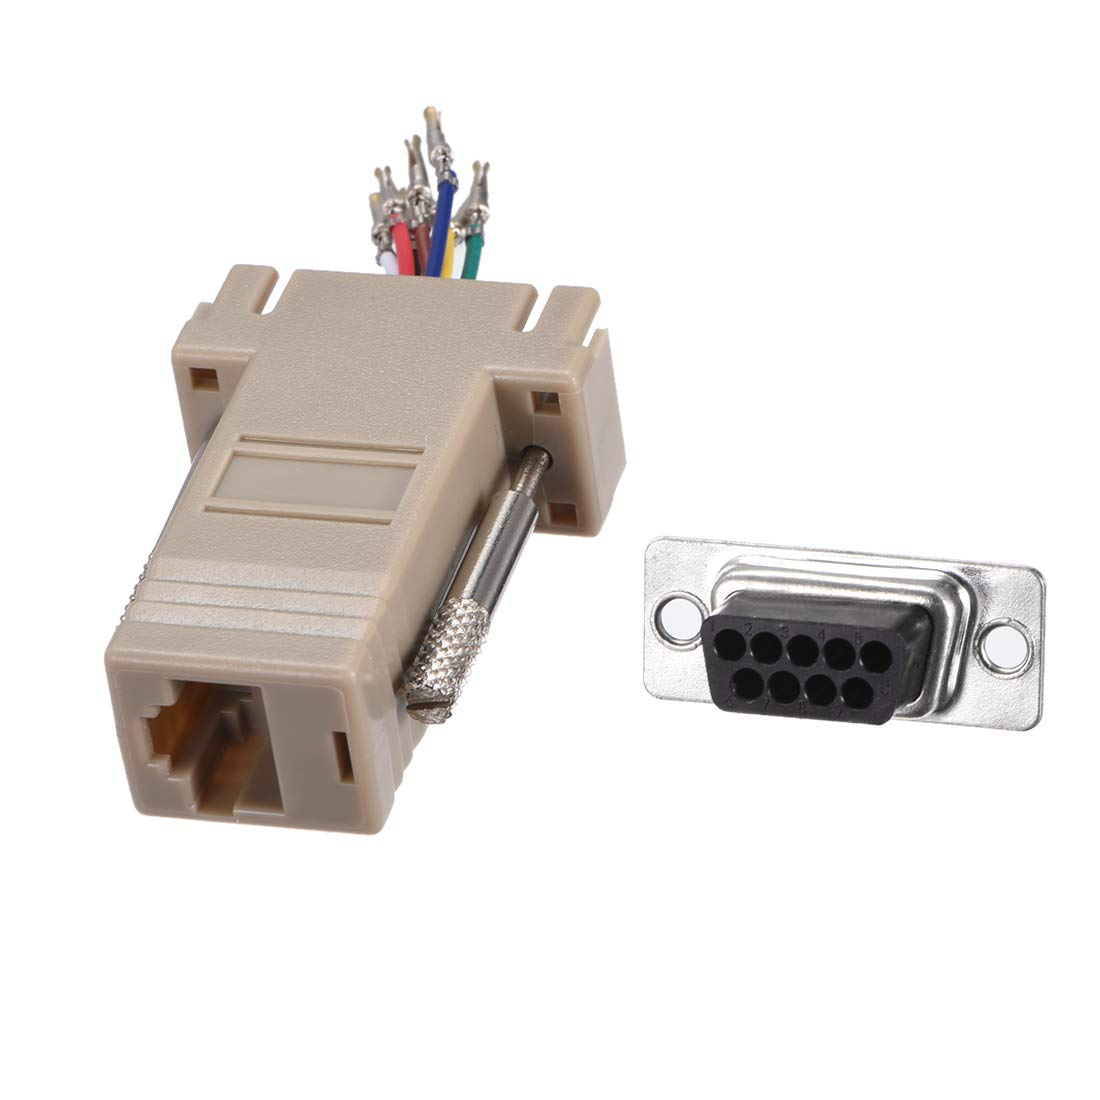 uxcell VGA Extender to RJ45 Network Cable Modular Adapter DB9 Female Port to RJ45 Female Enternet for Multimedia Video Beige Pack of 10